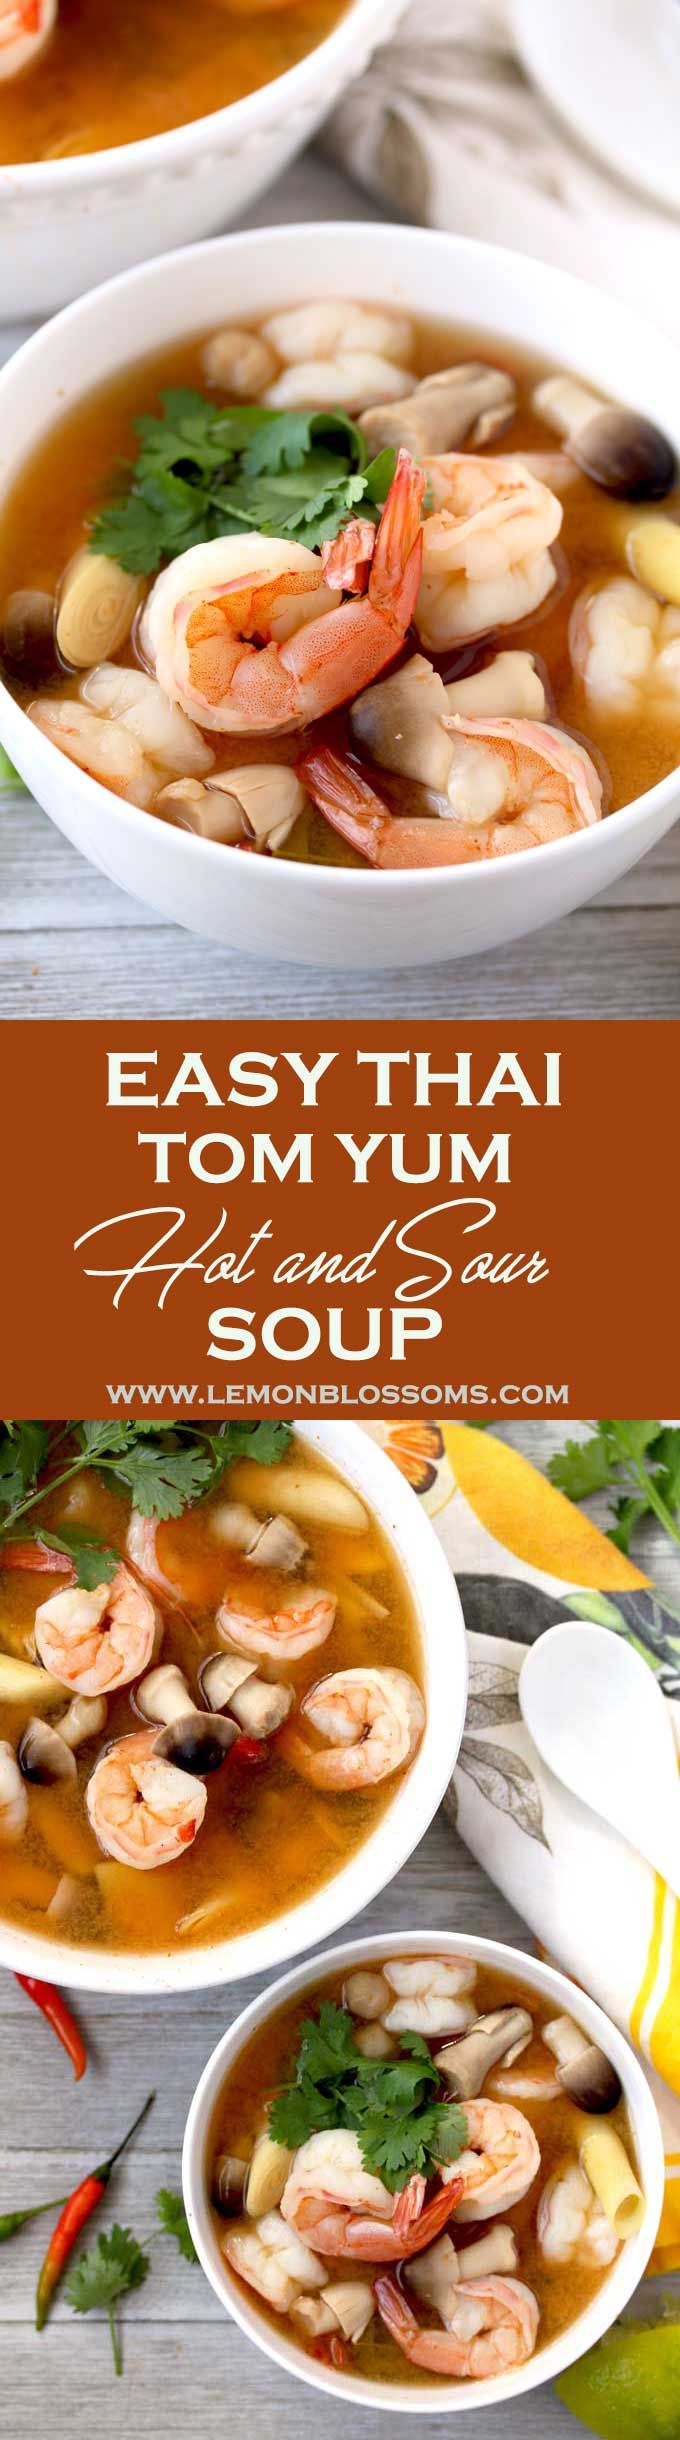 Thai Tom Yum Soup (Thai Hot and Sour Soup) is one of the easiest and quickest soups to make. The full flavored broth is infused with lemongrass, ginger and Thai chiles. Plump Shrimp, straw mushrooms and fresh cilantro complete this delicious and warming s